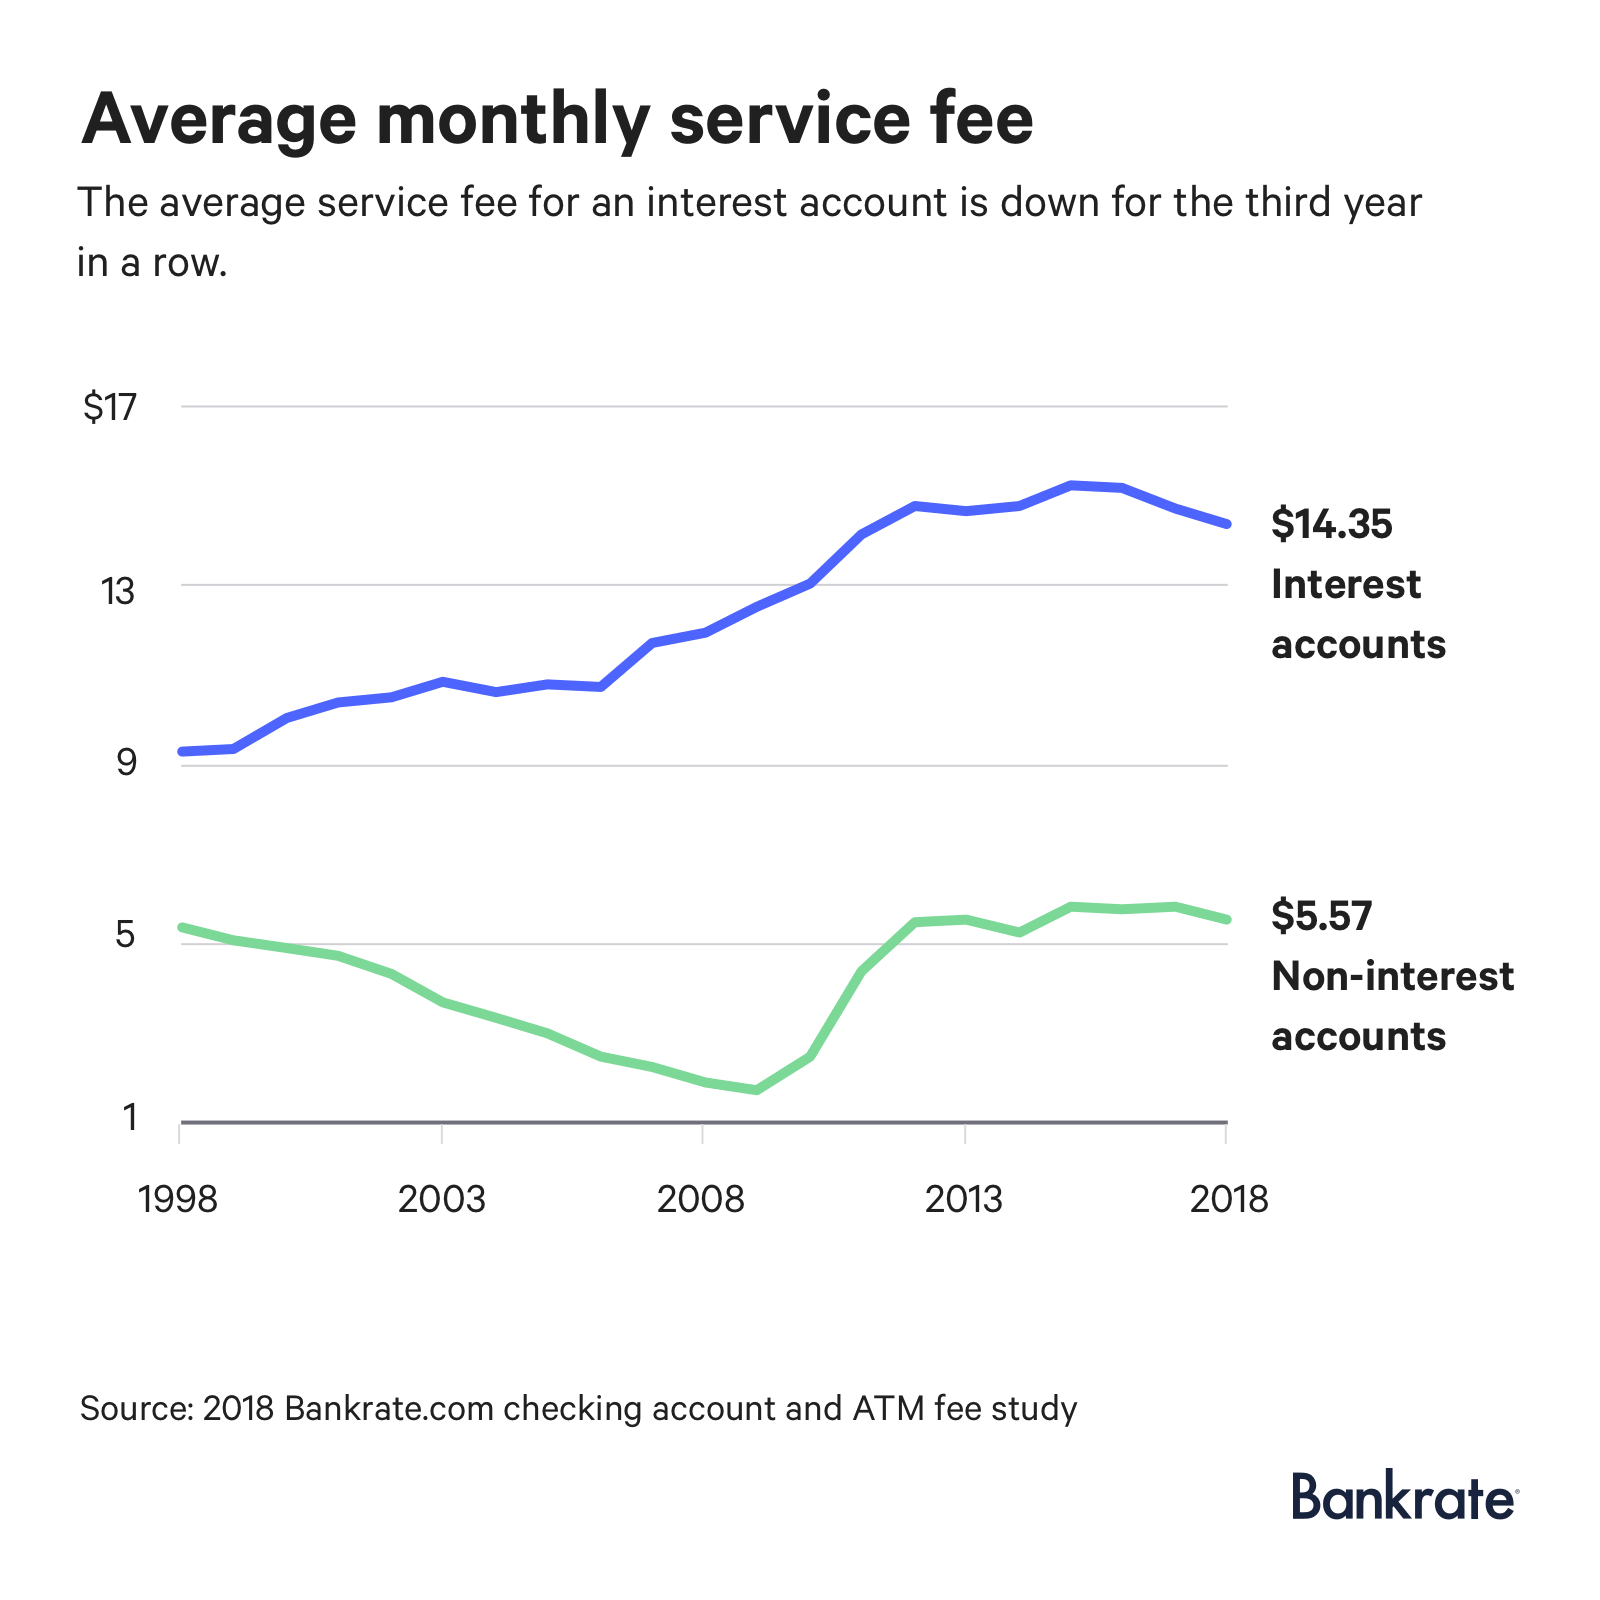 Graph: The average service fee for an interest account is $14.35.